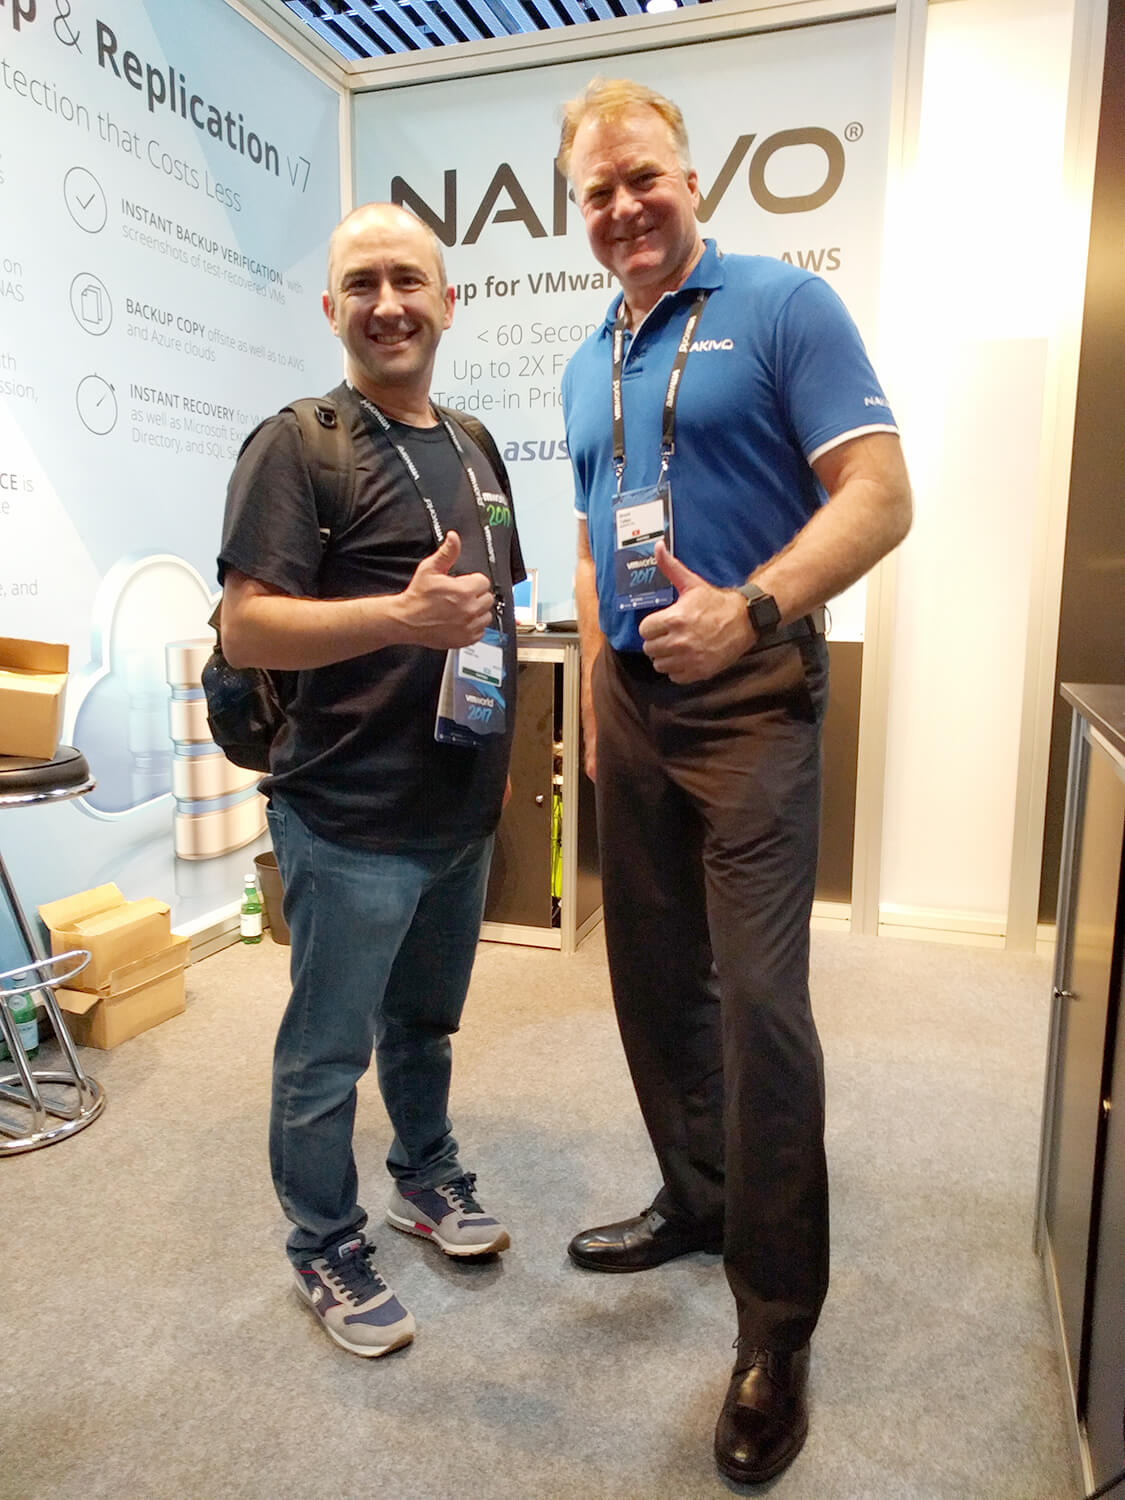 NAKIVO meets partners at VMworld